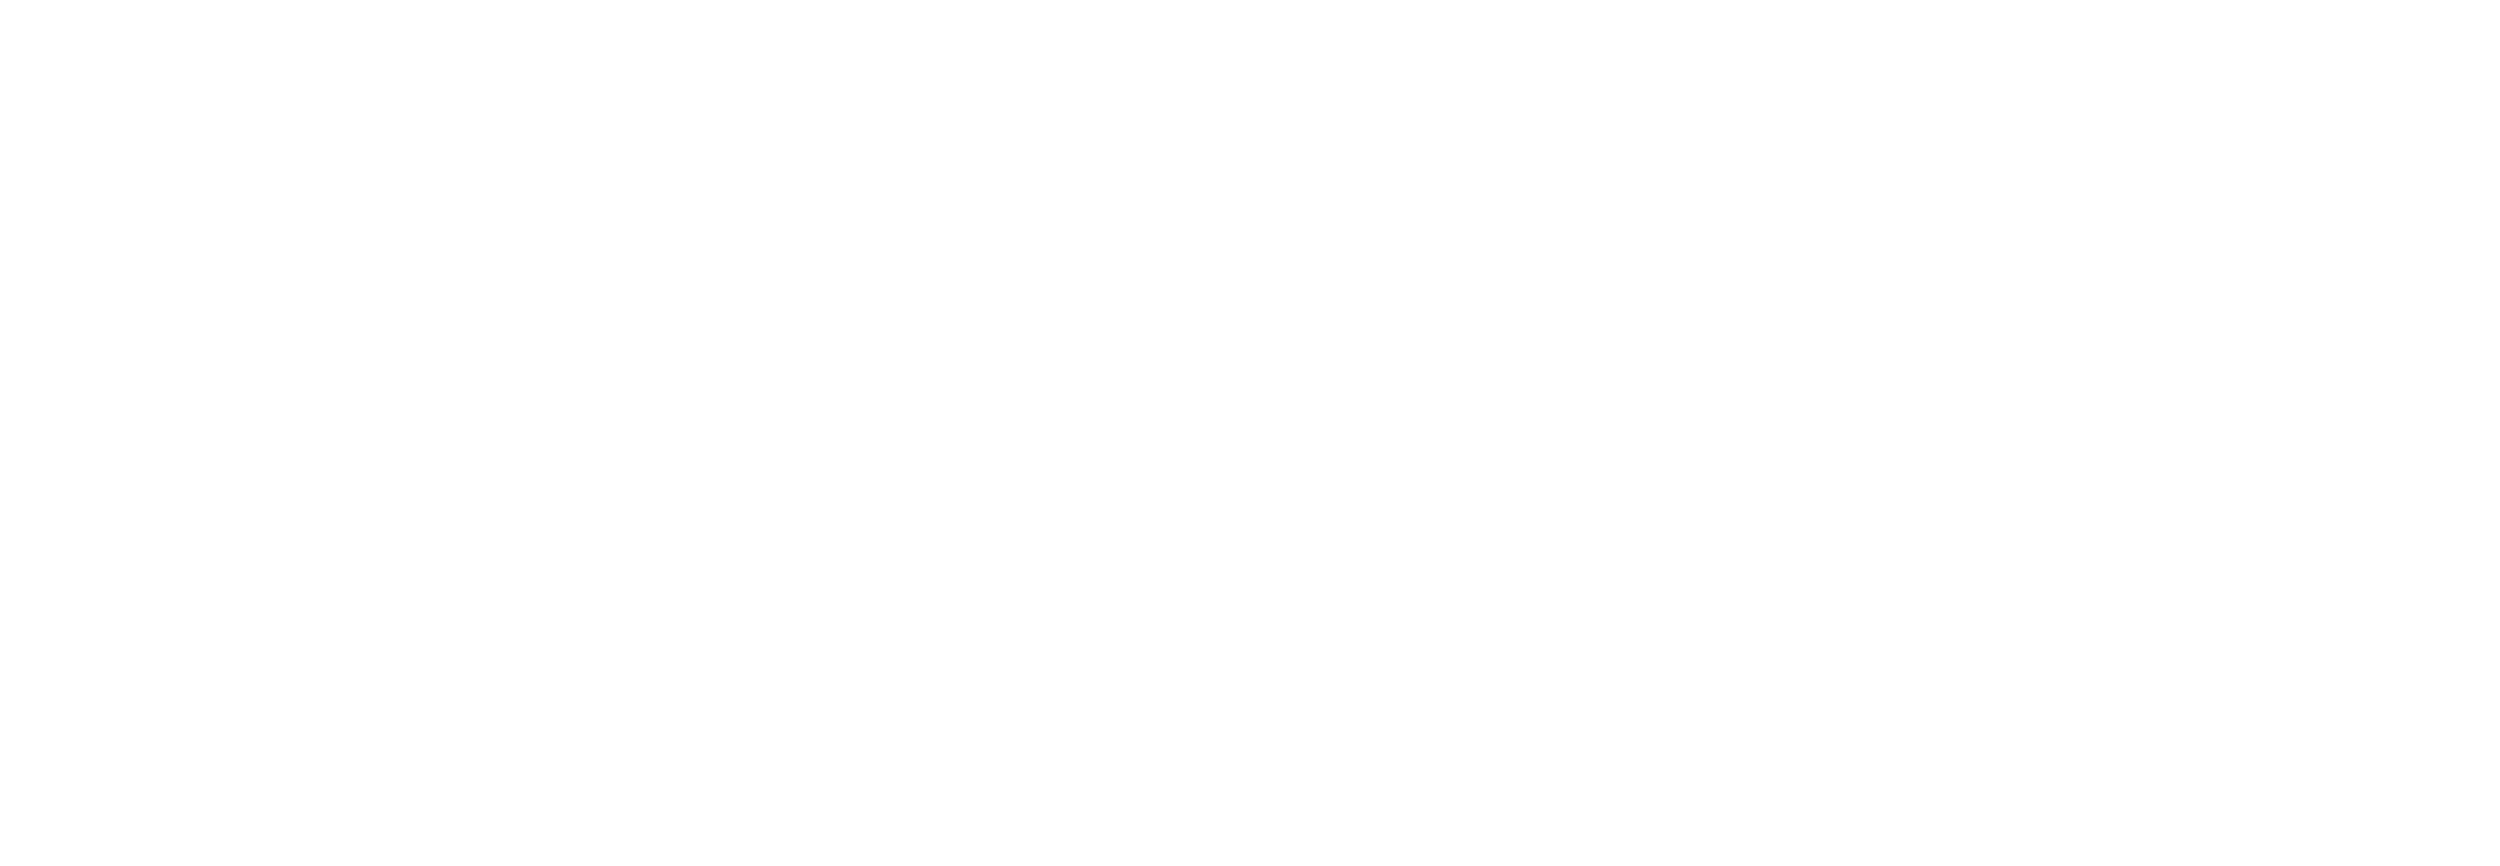 CC-Logo Transparent.png